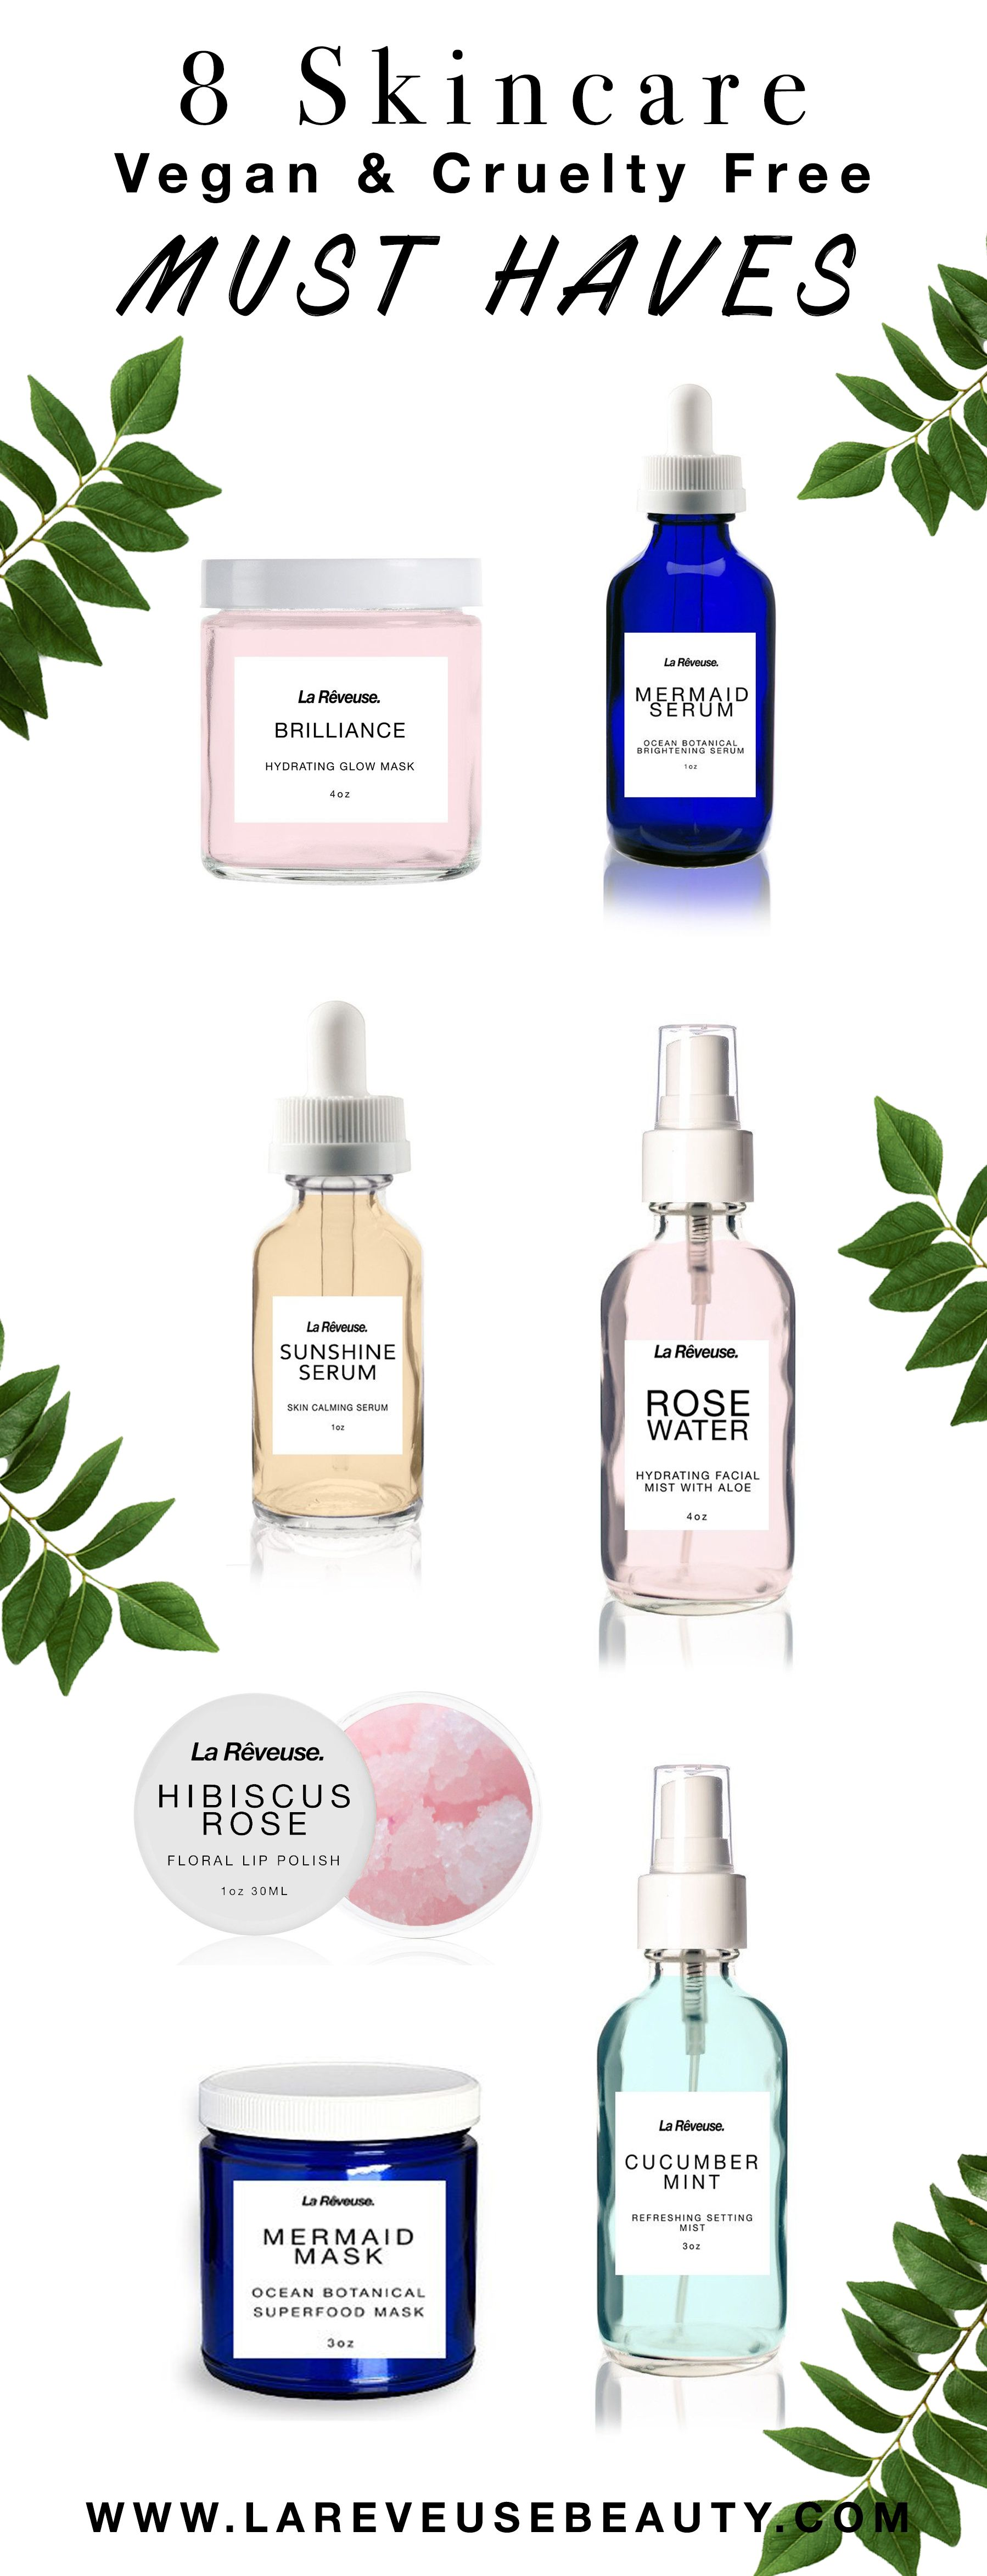 Cruelty Free Skincare Must Haves From Www Lareveusebeauty Com Cruelty Free Skin Care Organic Skin Care Skin Care